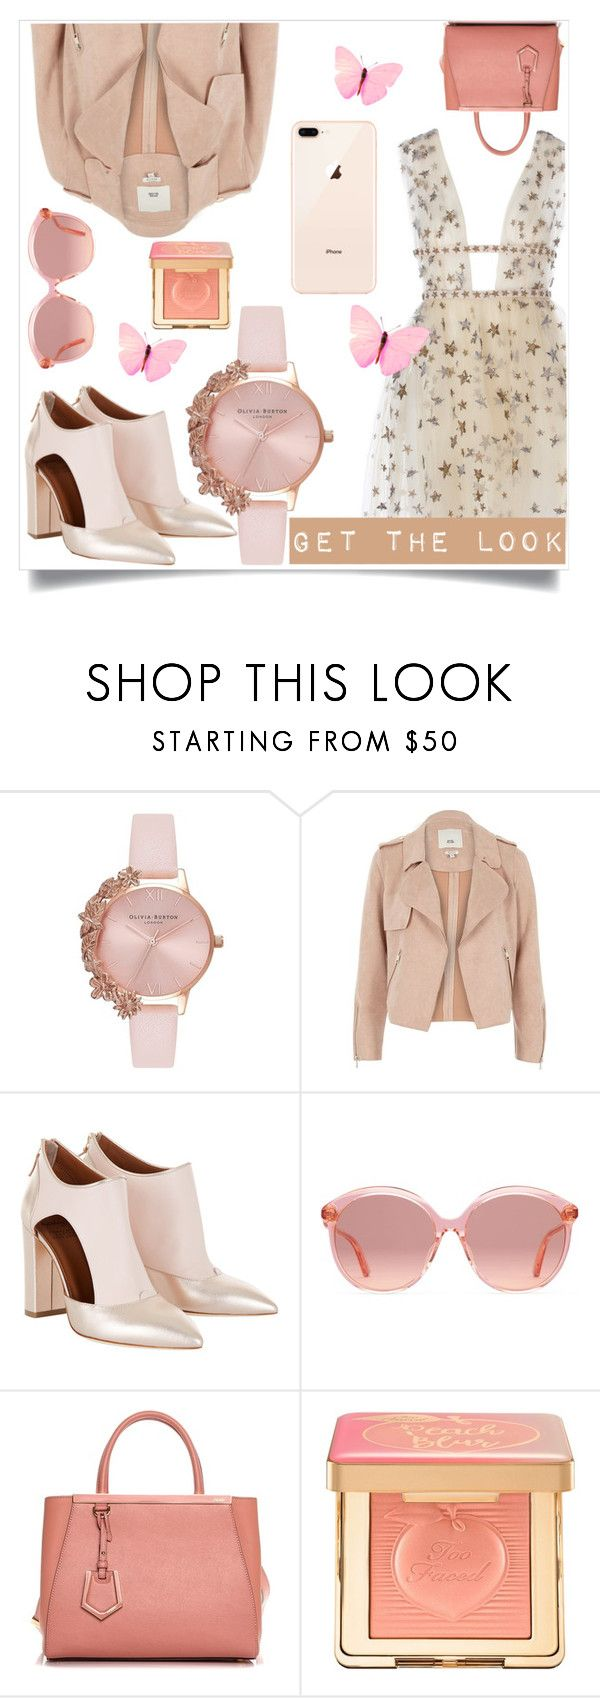 """Love"" by ana-lipstick ❤ liked on Polyvore featuring Olivia Burton, River Island, Gucci, Fendi and Too Faced Cosmetics"